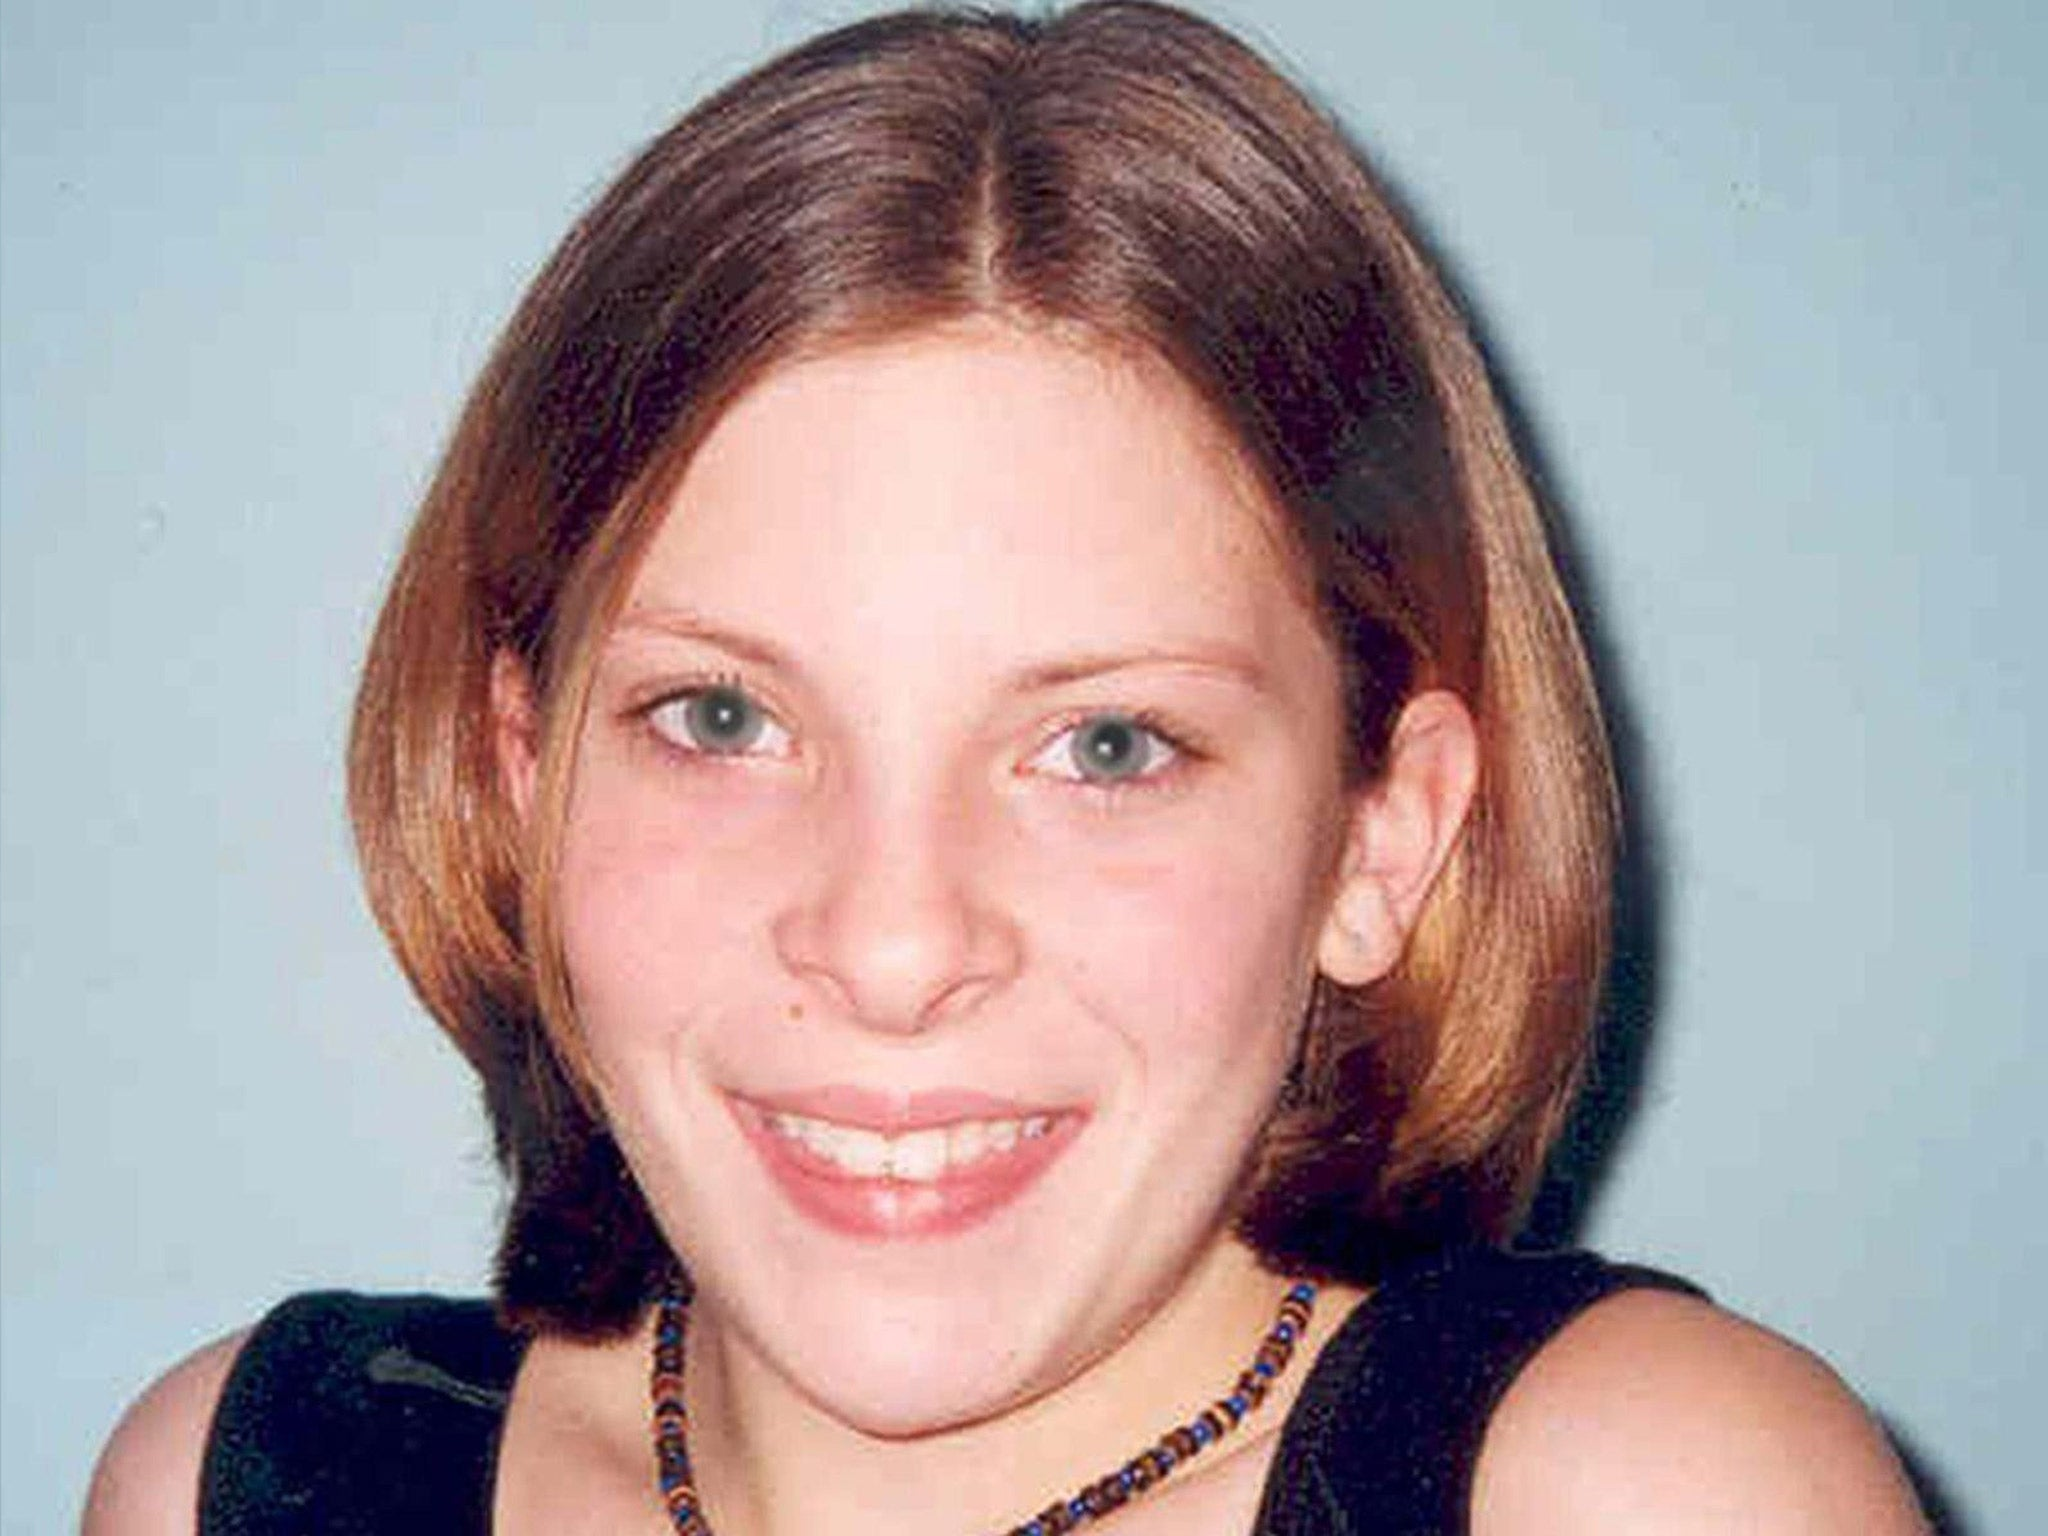 Milly Dowler's killer linked to 24 violent attacks against women in two decades before prison   The Independent